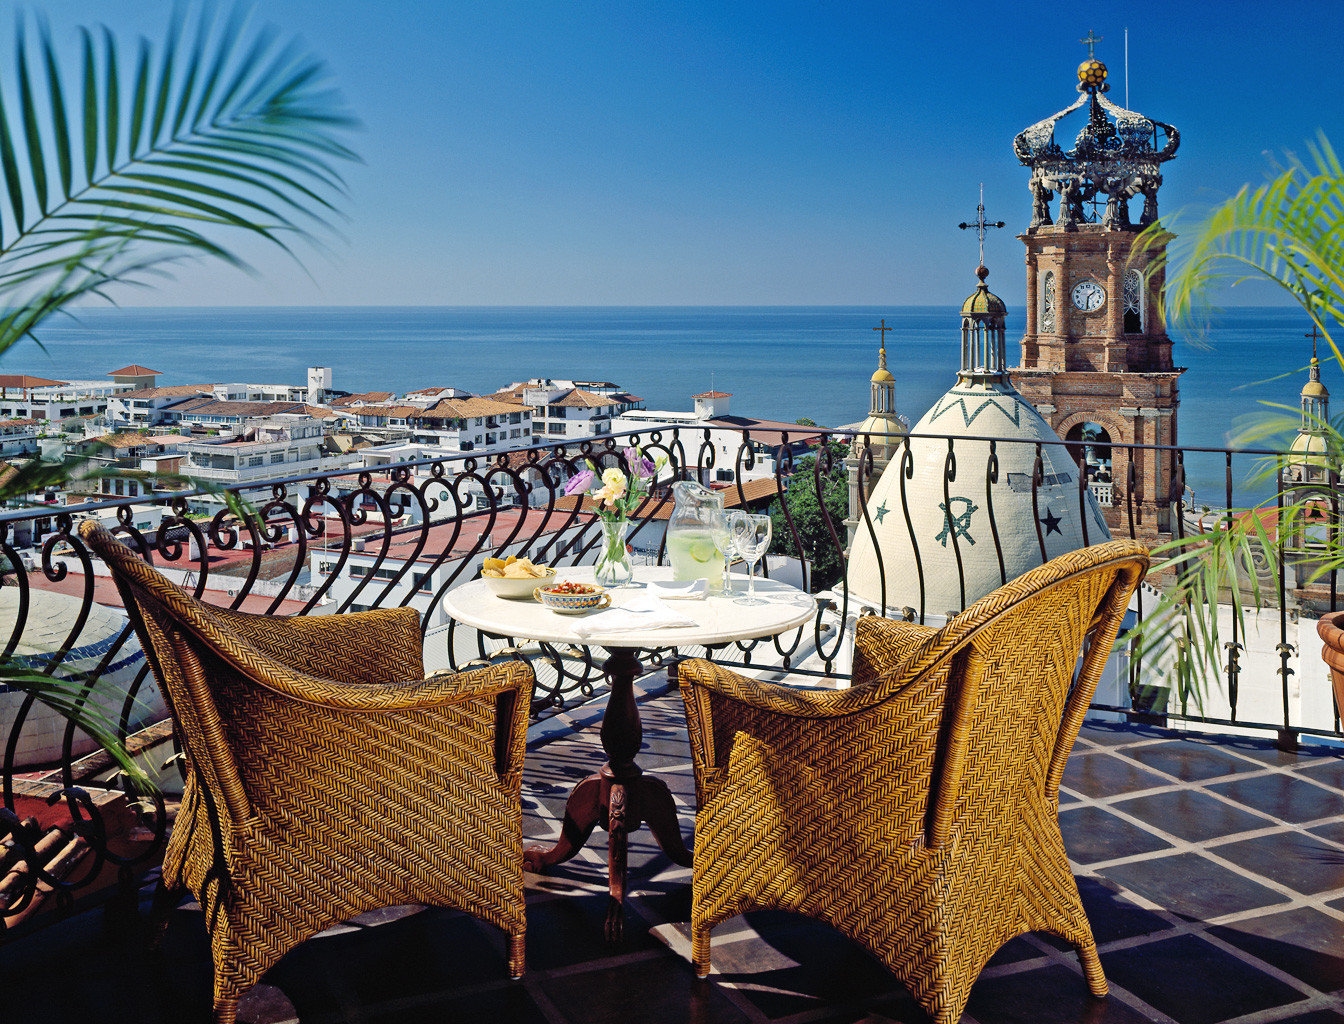 Balcony Dining Elegant Hotels Romance Romantic Rooftop Waterfront outdoor chair vacation Resort tourism furniture dining table